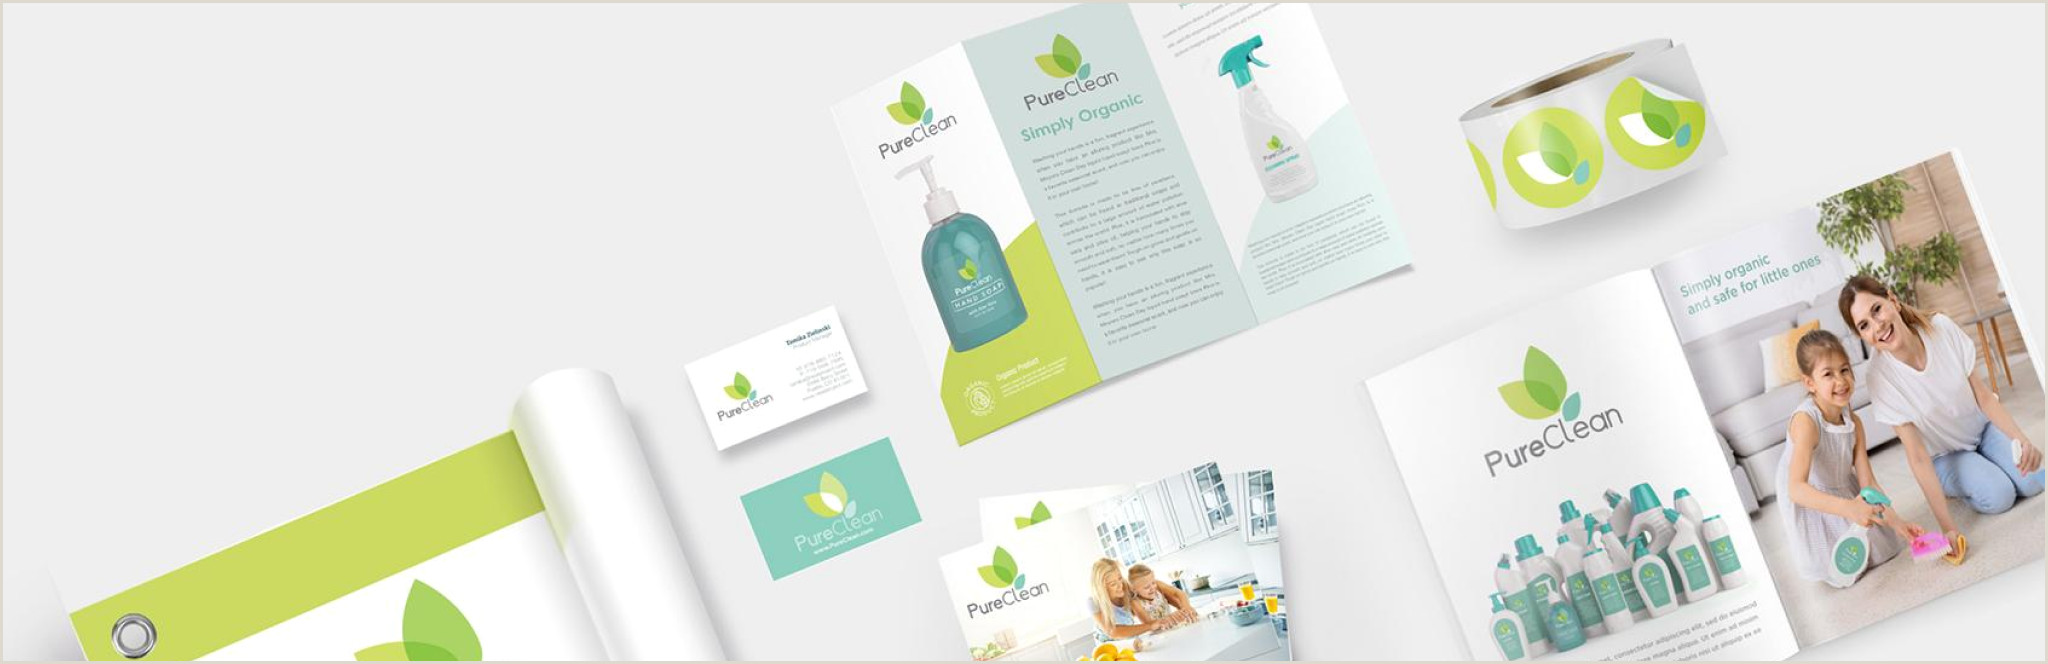 How To Make A Professional Business Card Printplace High Quality Line Printing Services